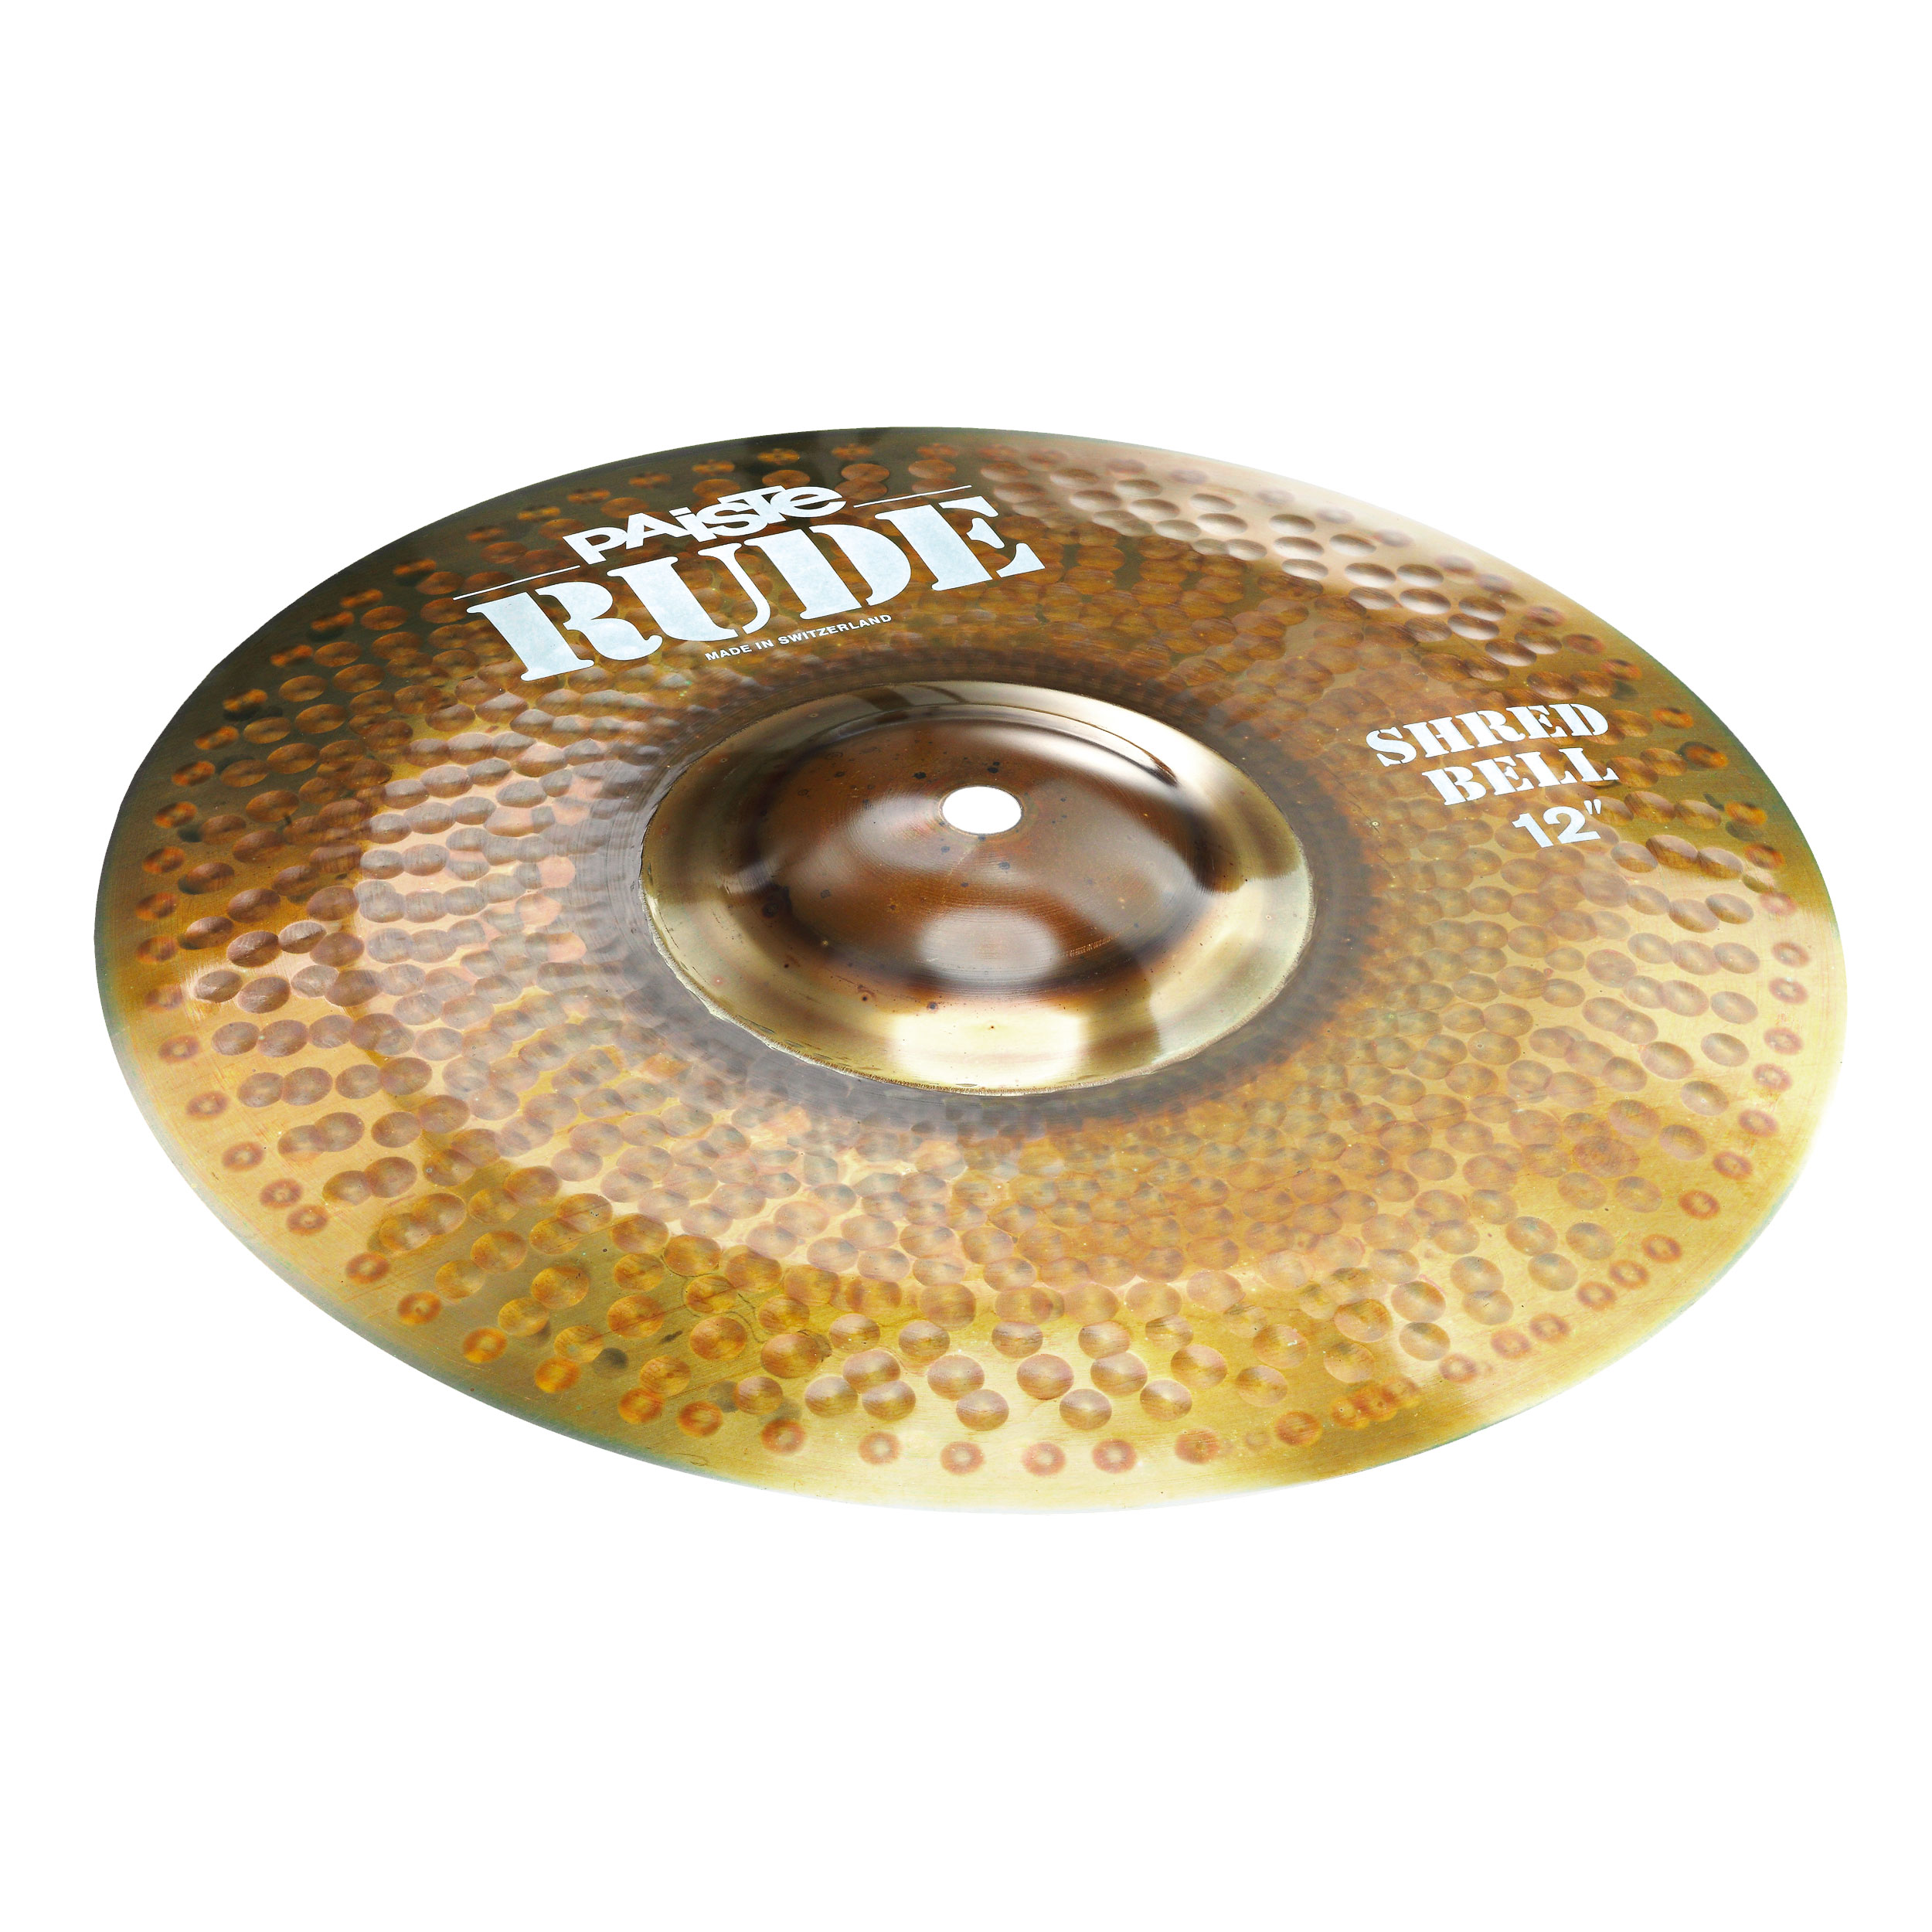 """Paiste 12"""" Rude Shred Bell Cymbal"""